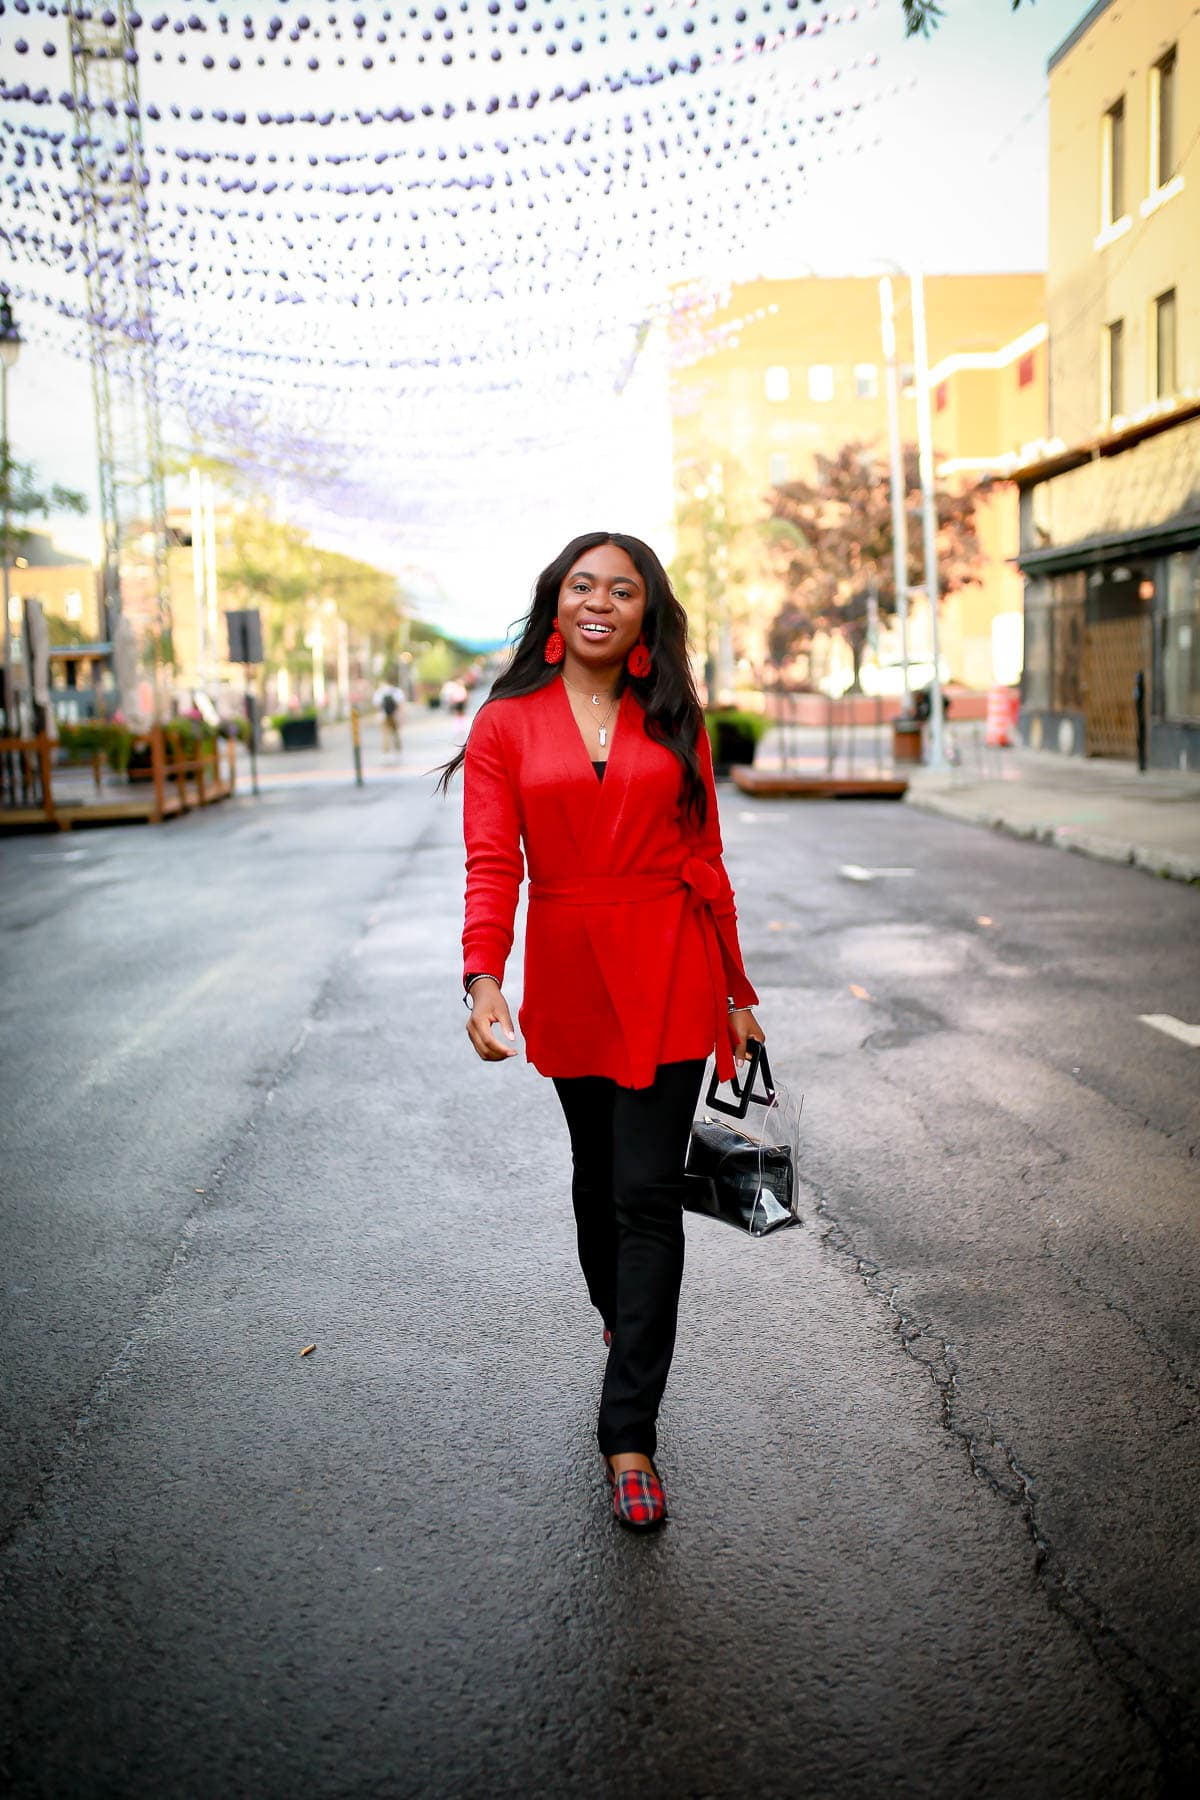 Looking for a comfortable, stylish yet cozy work style outfit? Betabrand yoga dress pants are probably one of the best in the market for career women. Fashion and style blogger, Louisa shares how to pair this work style with items you already have in your closet to avoid looking frumpy. This post covers work style, dress pants, office style outfit, Victoria Emerson